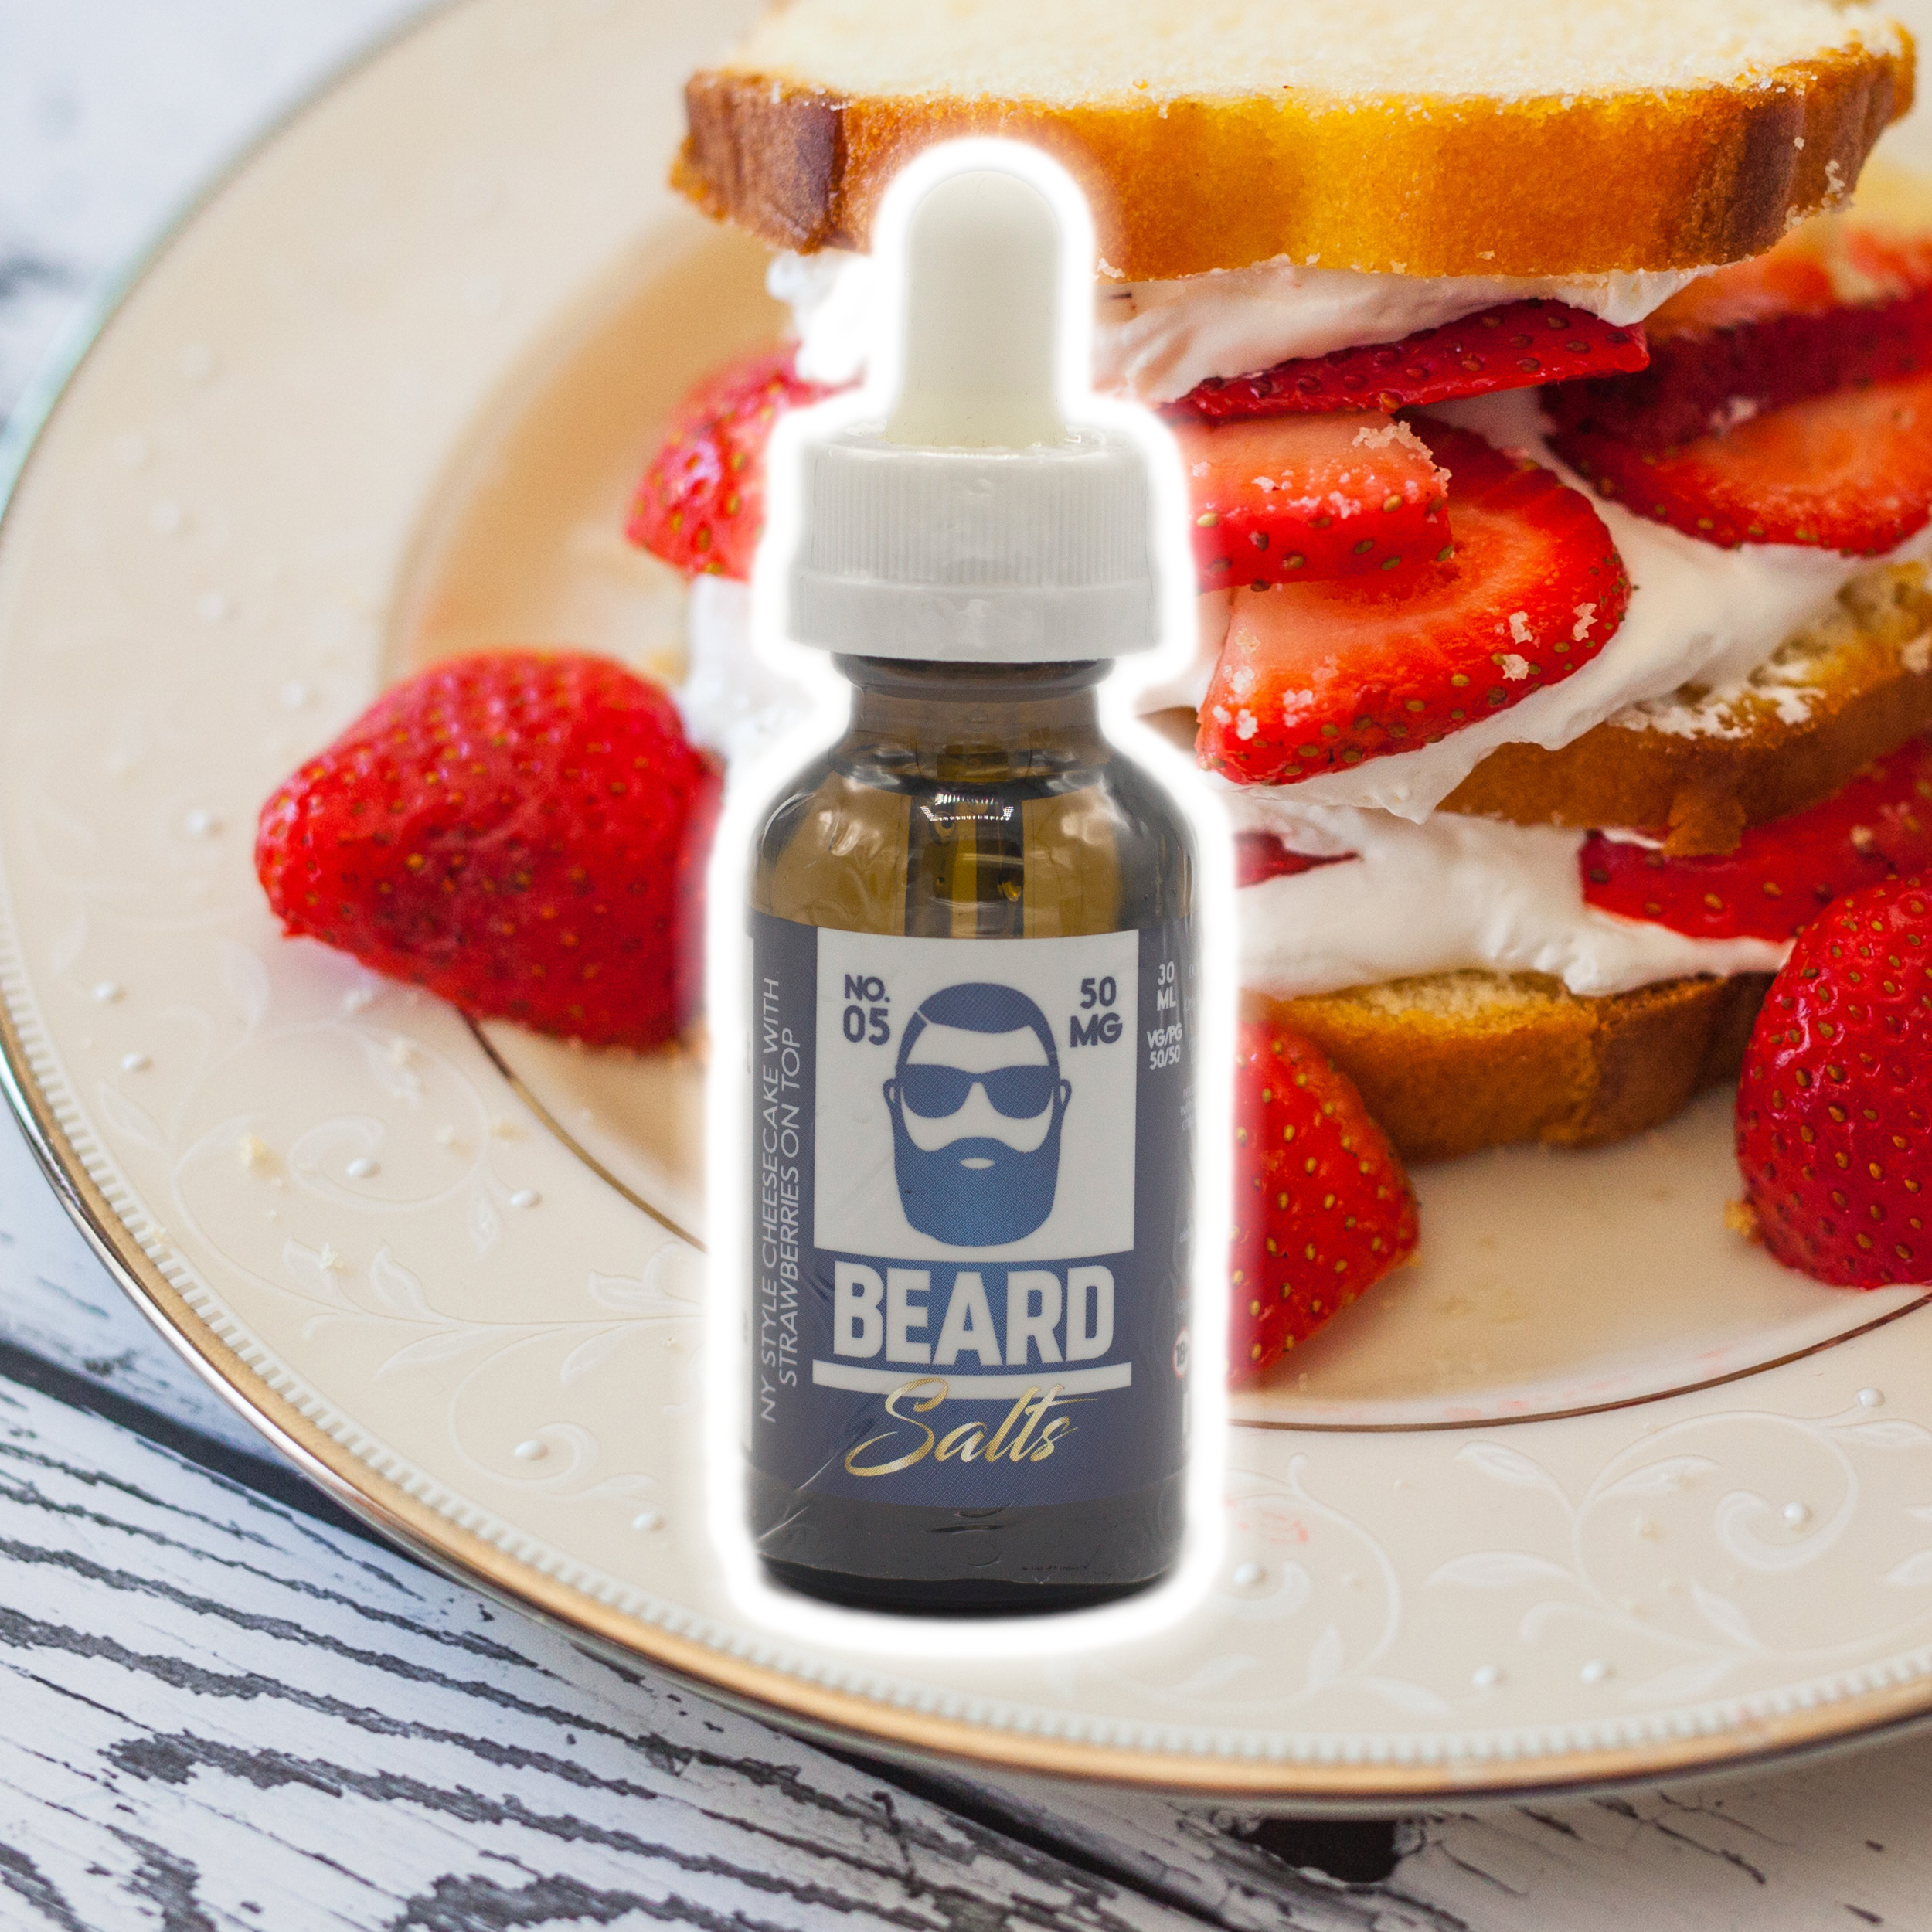 NY Style Cheesecake with Strawberries on Top - 50mg - Beard Salts